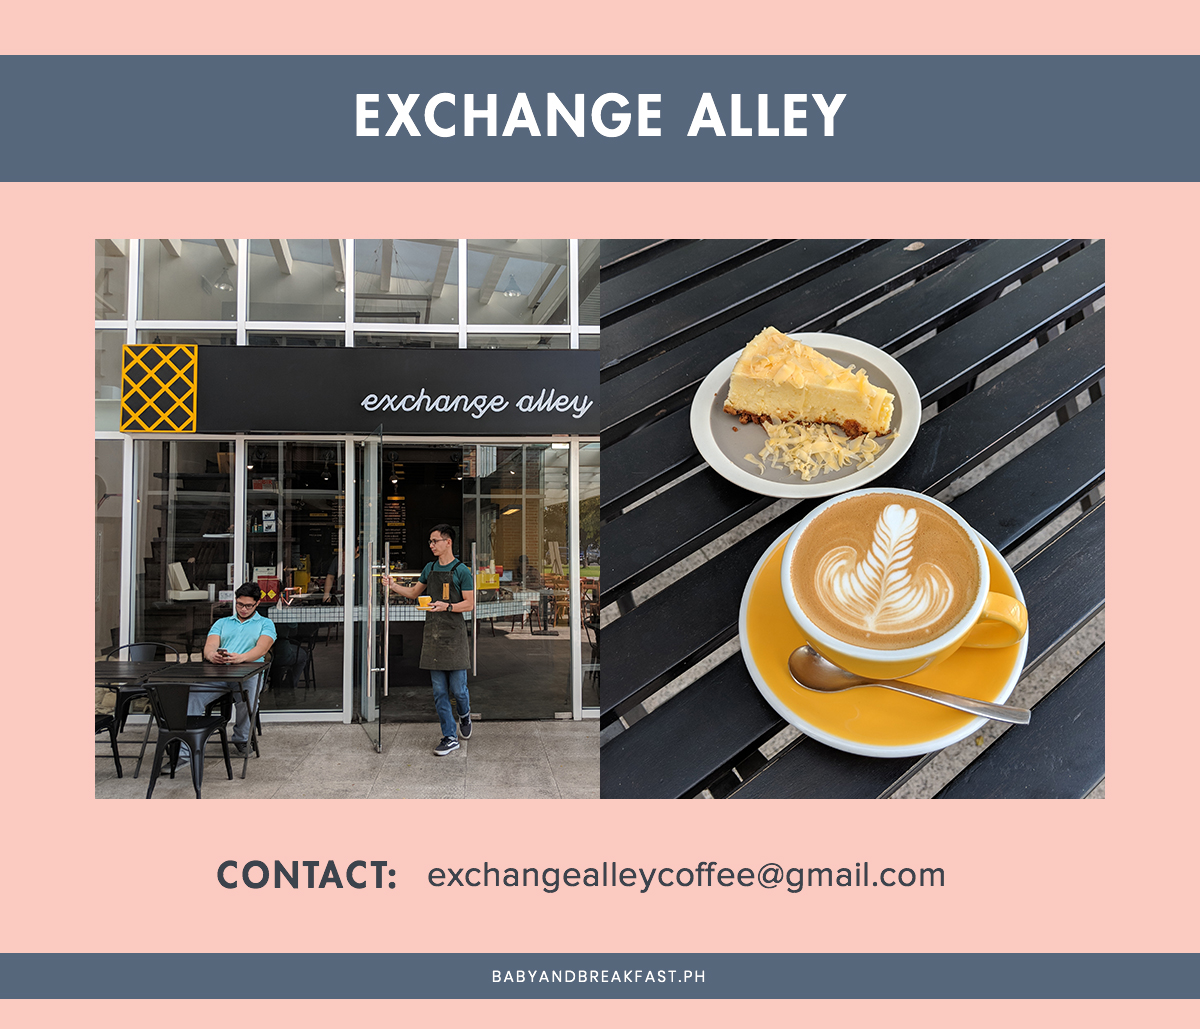 Exchange Alley